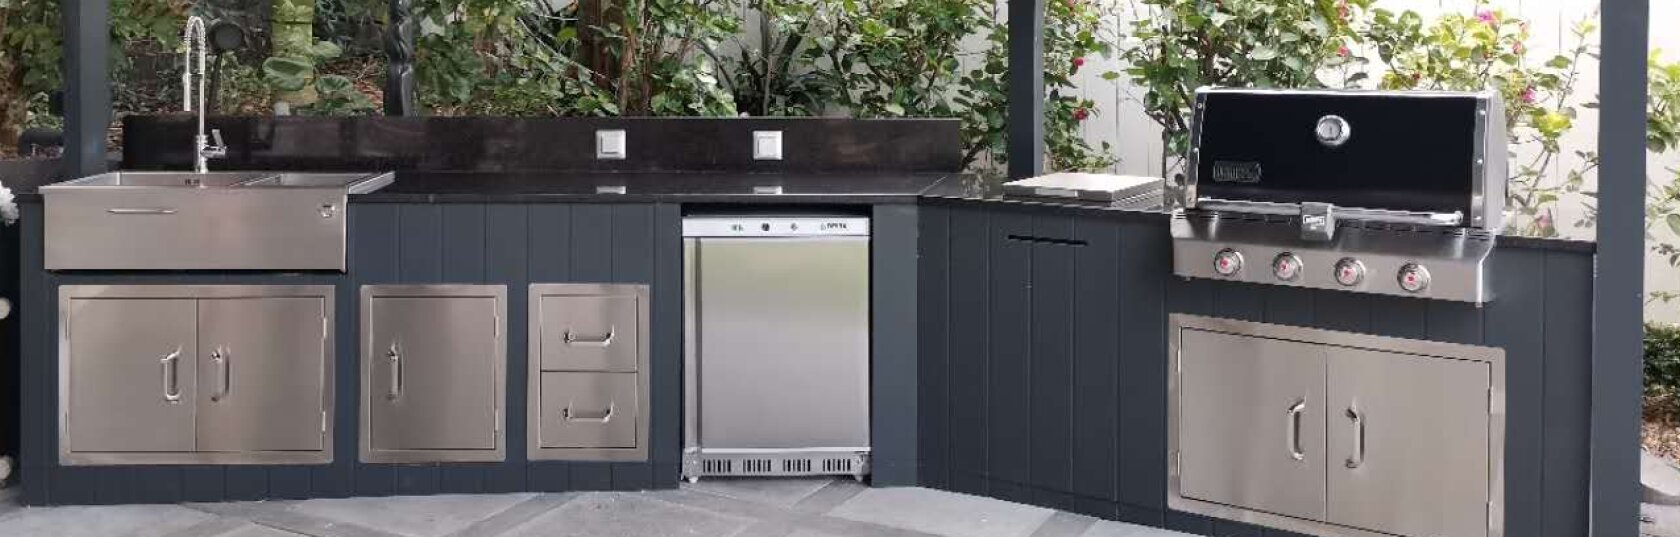 What makes a great outdoor kitchen?